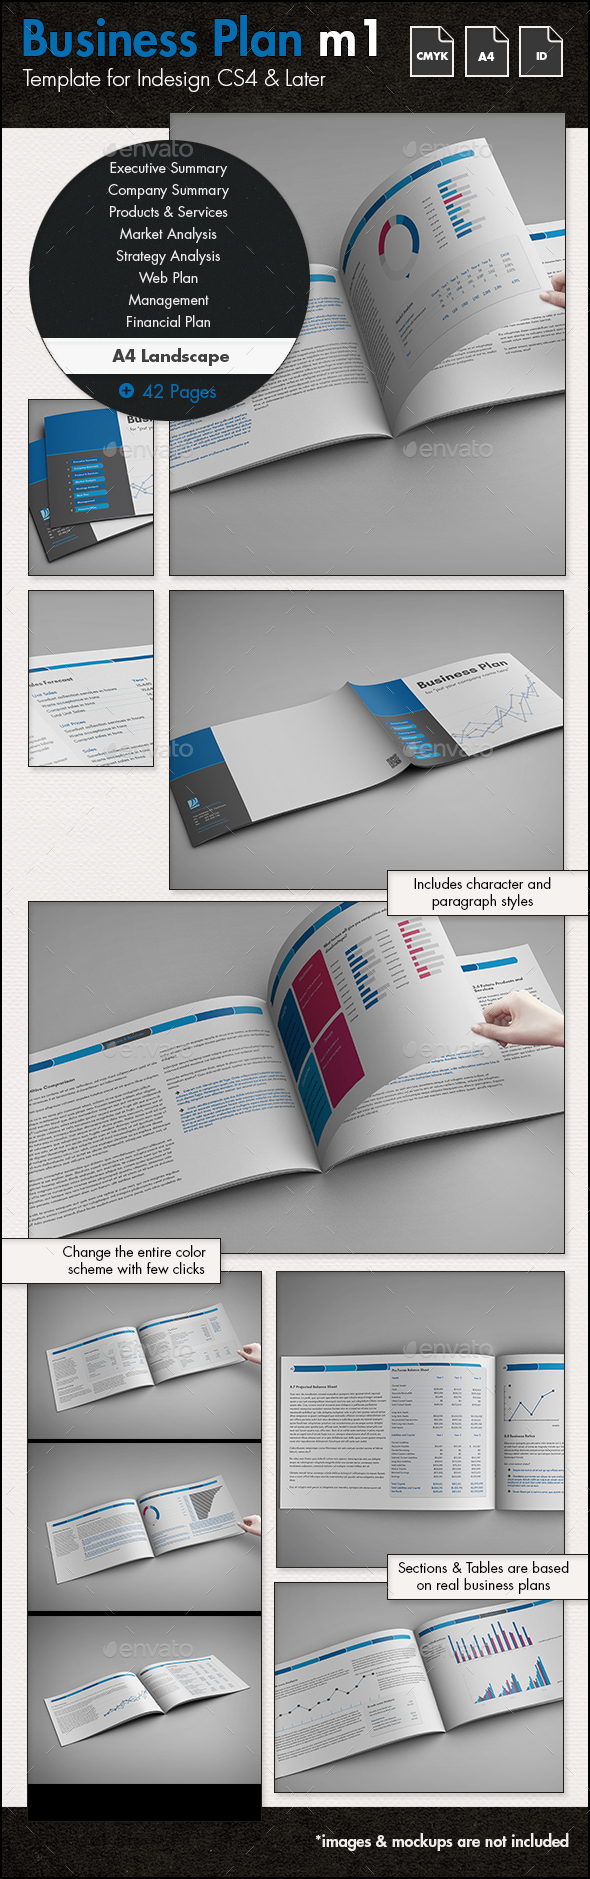 Business Plan Template m1 - A4 Landscape - Proposals & Invoices Stationery